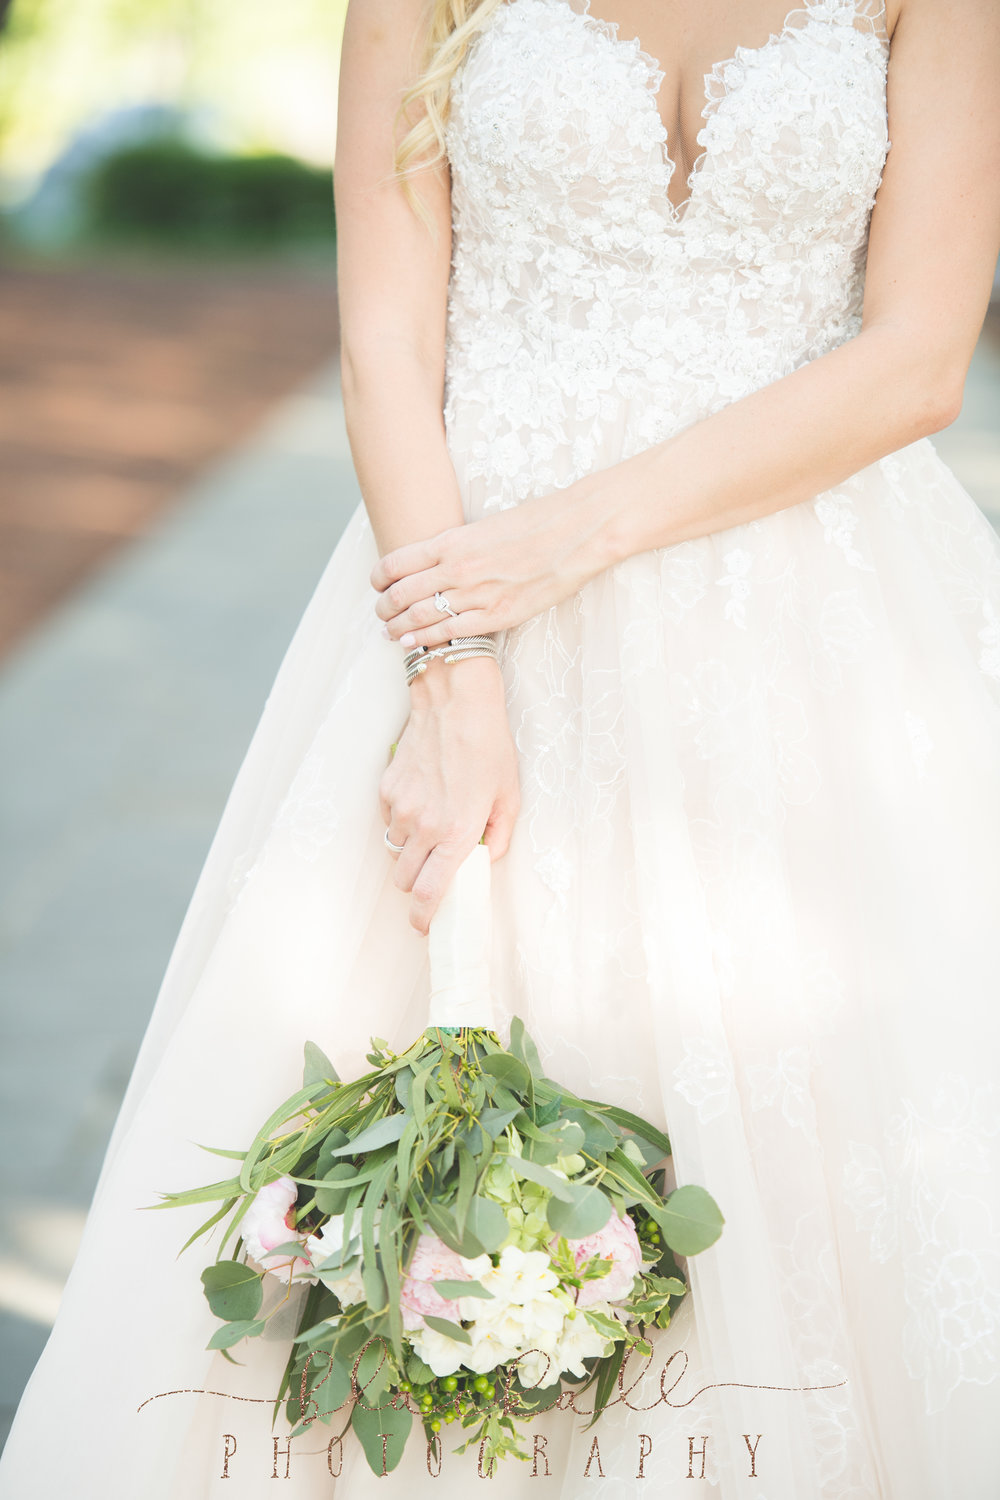 BRIDALS_BlackallPhotography_9.JPG